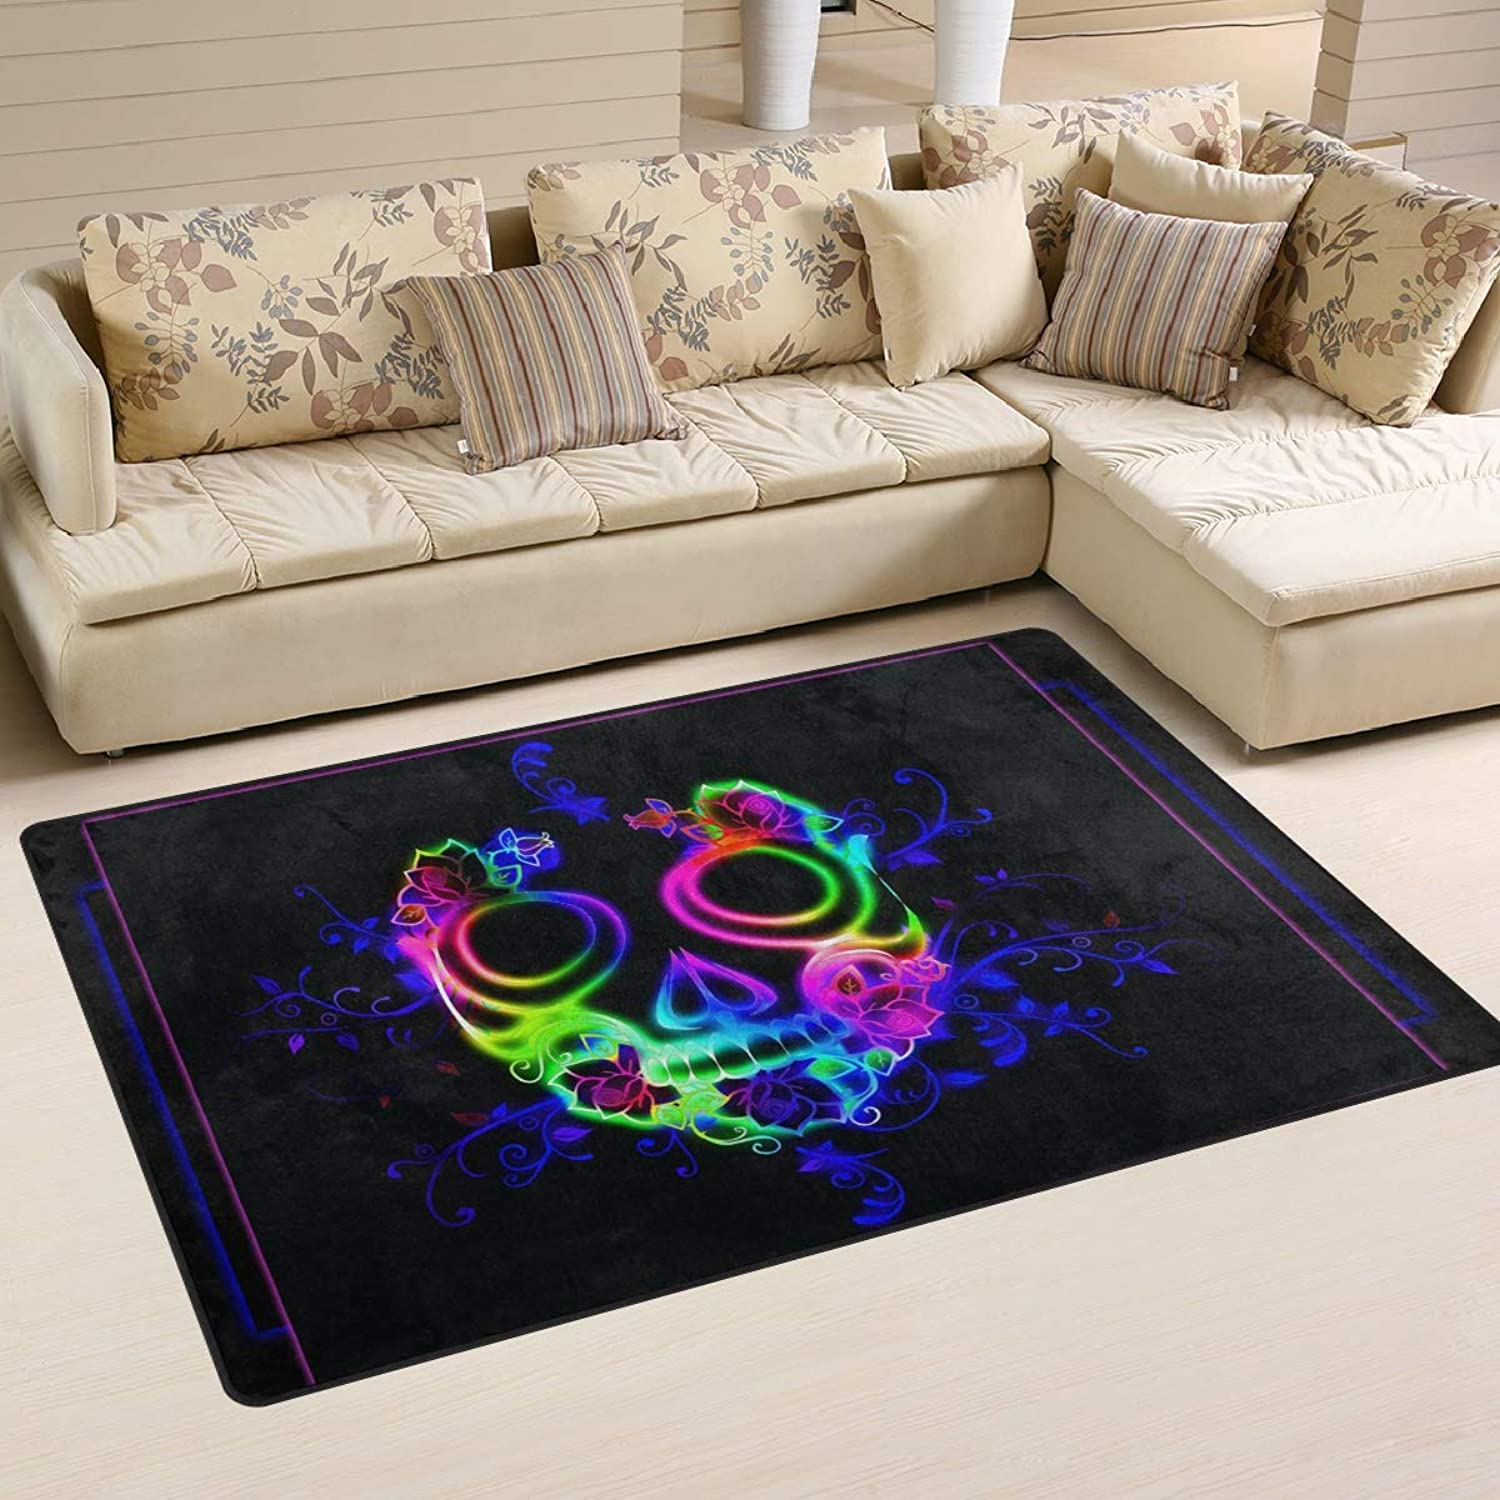 Area Rugs Doormats Horror colorful Skull Ghost Halloween 5'x3'3 (60x39 Inches) Non-Slip Floor Mat Soft Carpet for Living Dining Bedroom Home